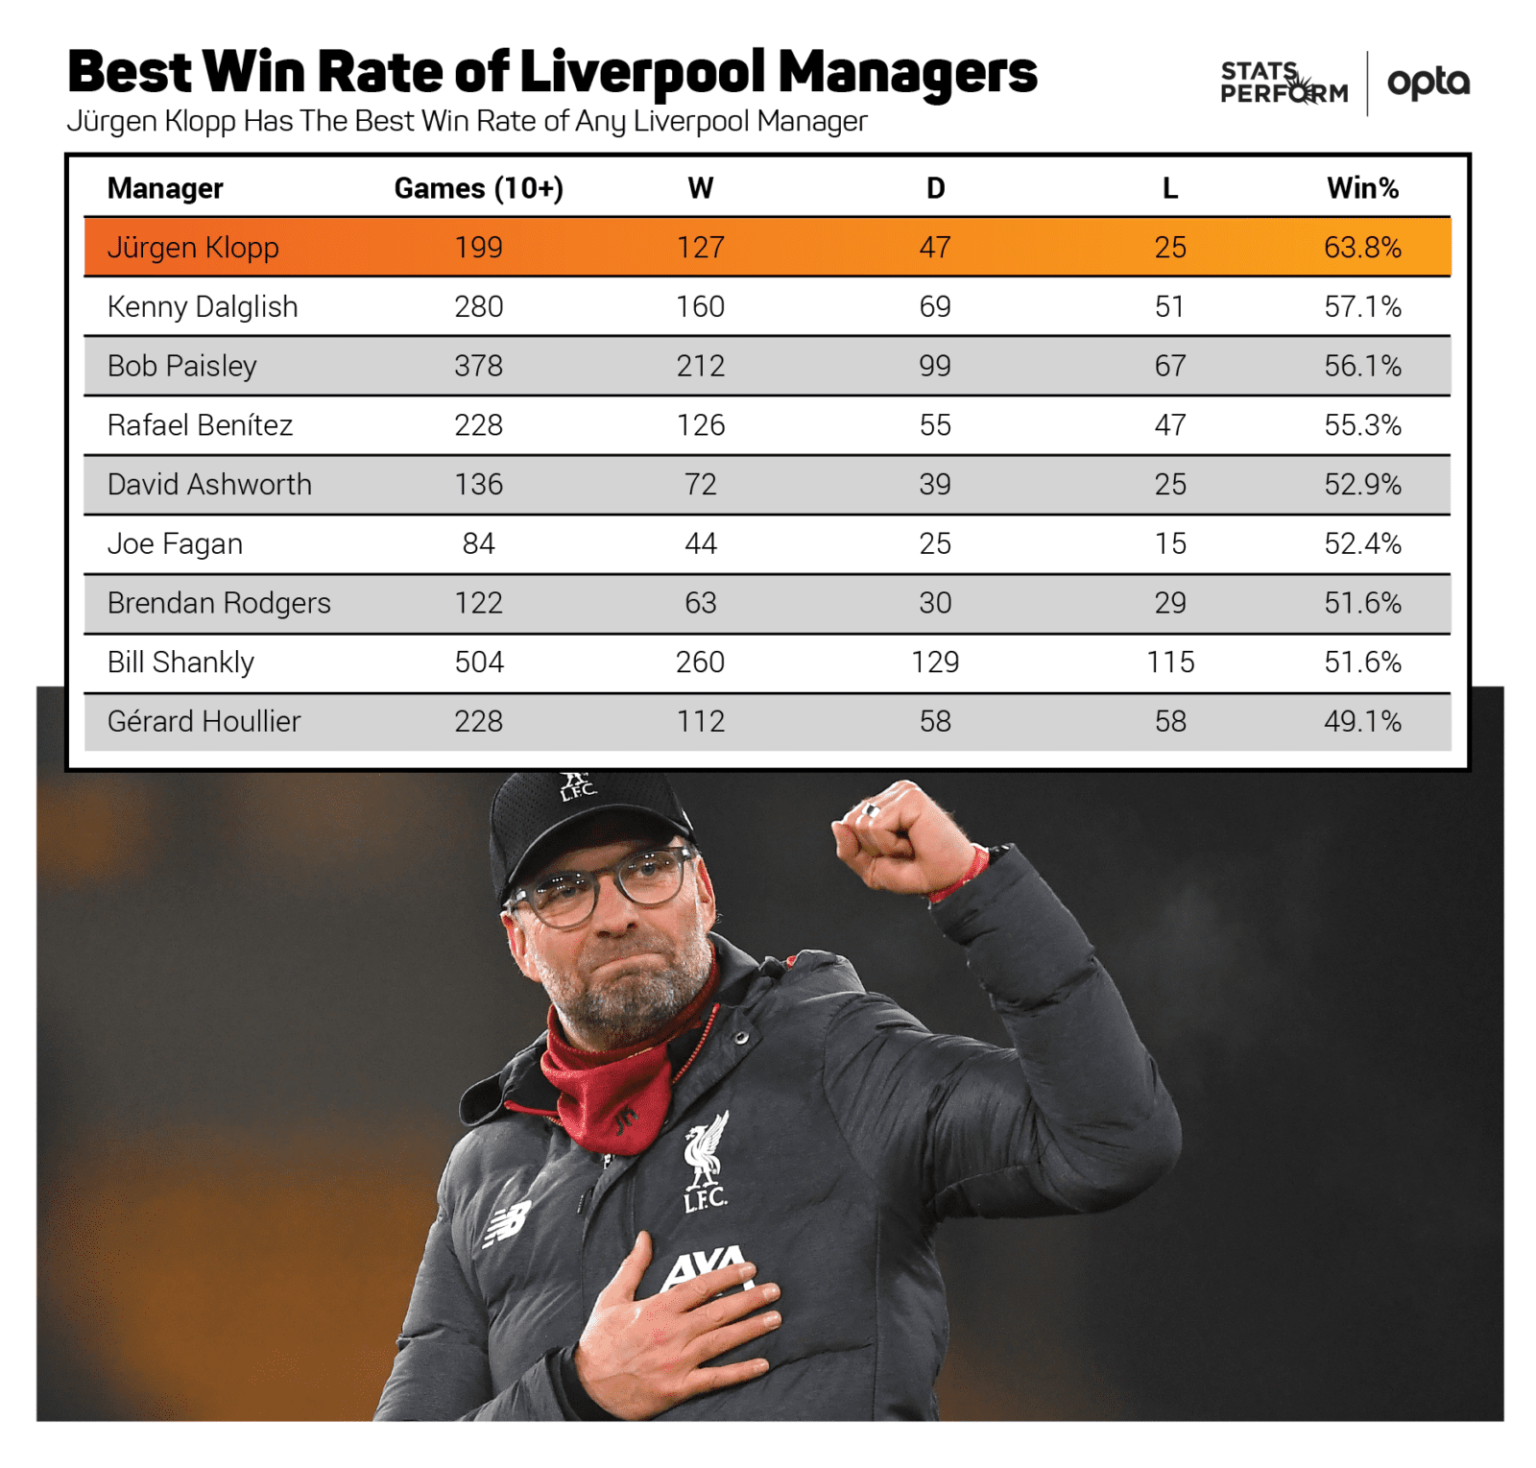 Liverpool manager win rate